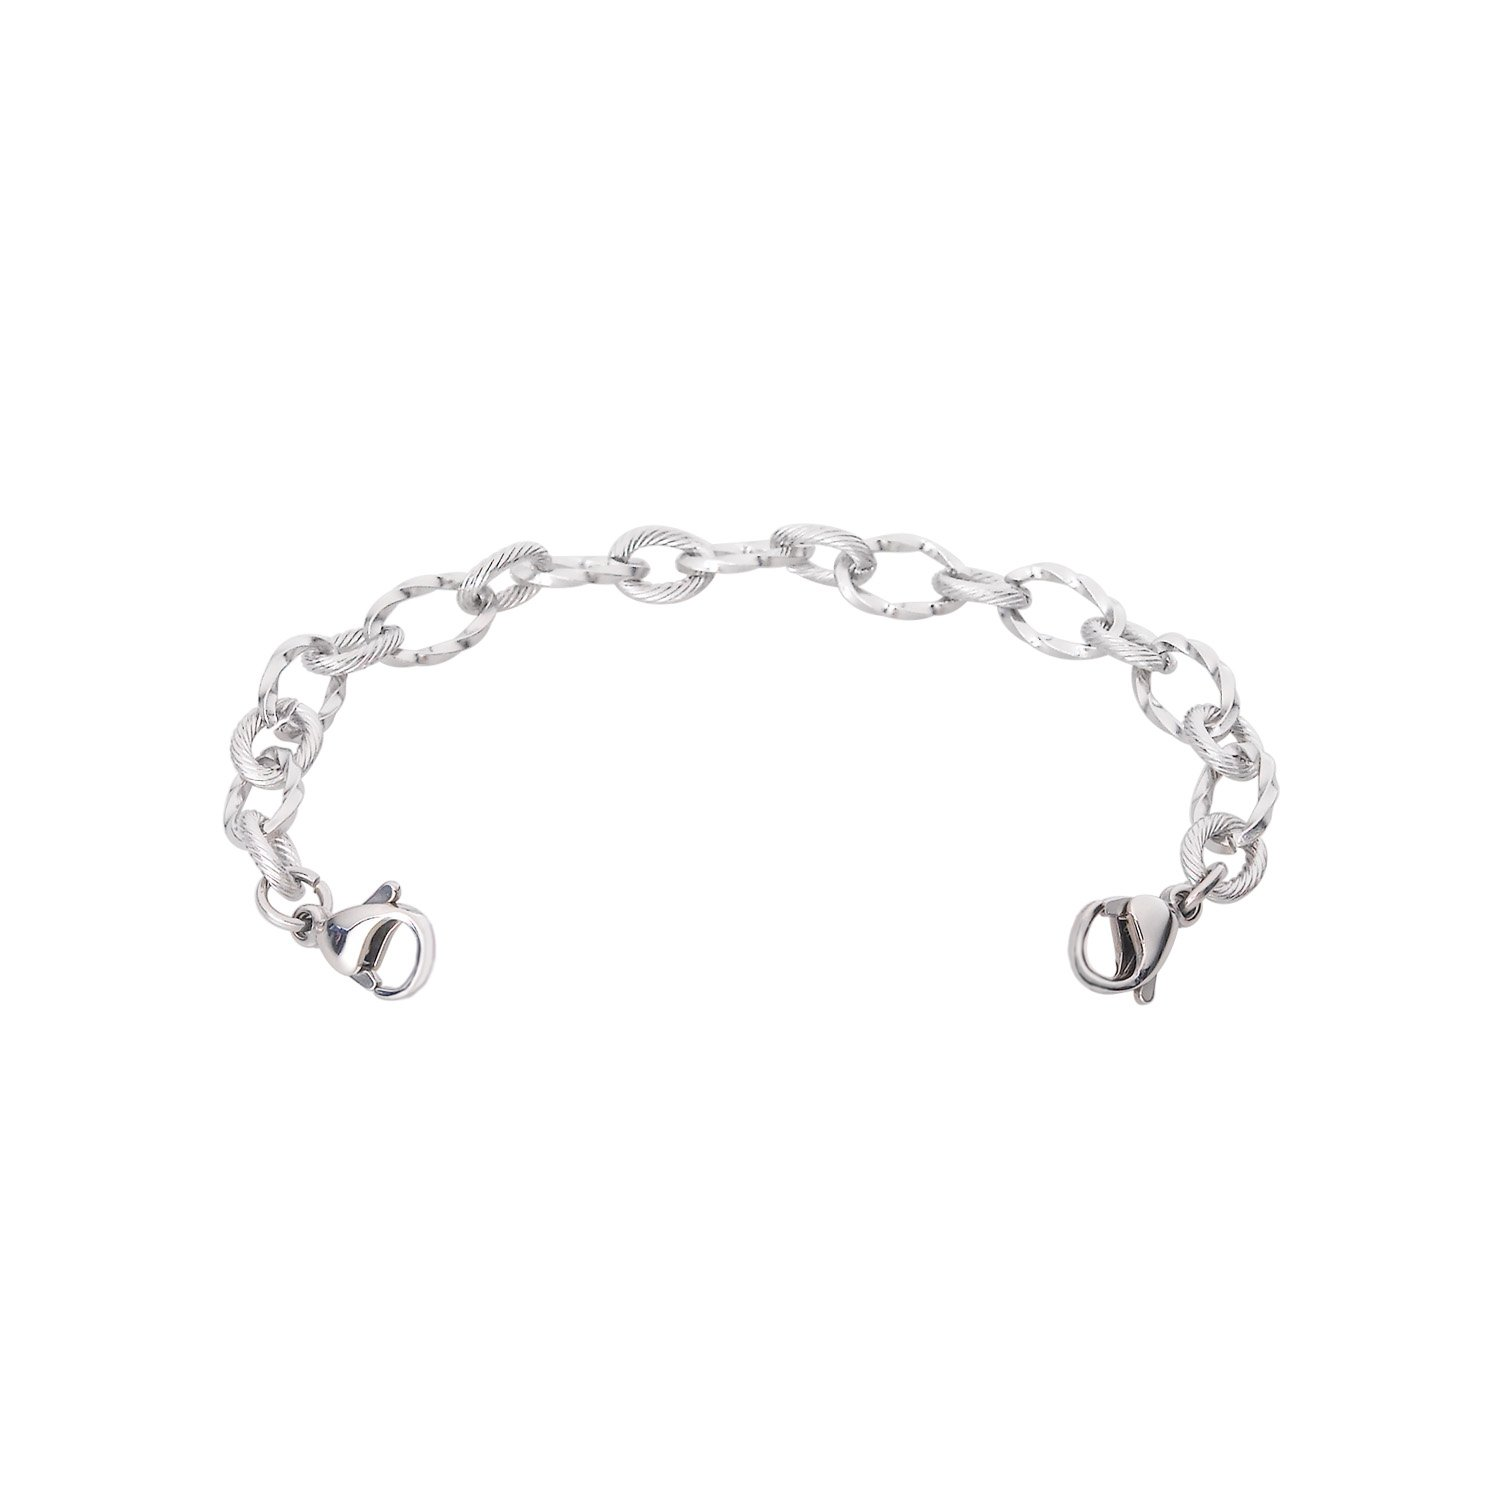 Divoti Ridged Stainless Medical Alert Replacement Bracelet Divoti Inc. 5517S-40